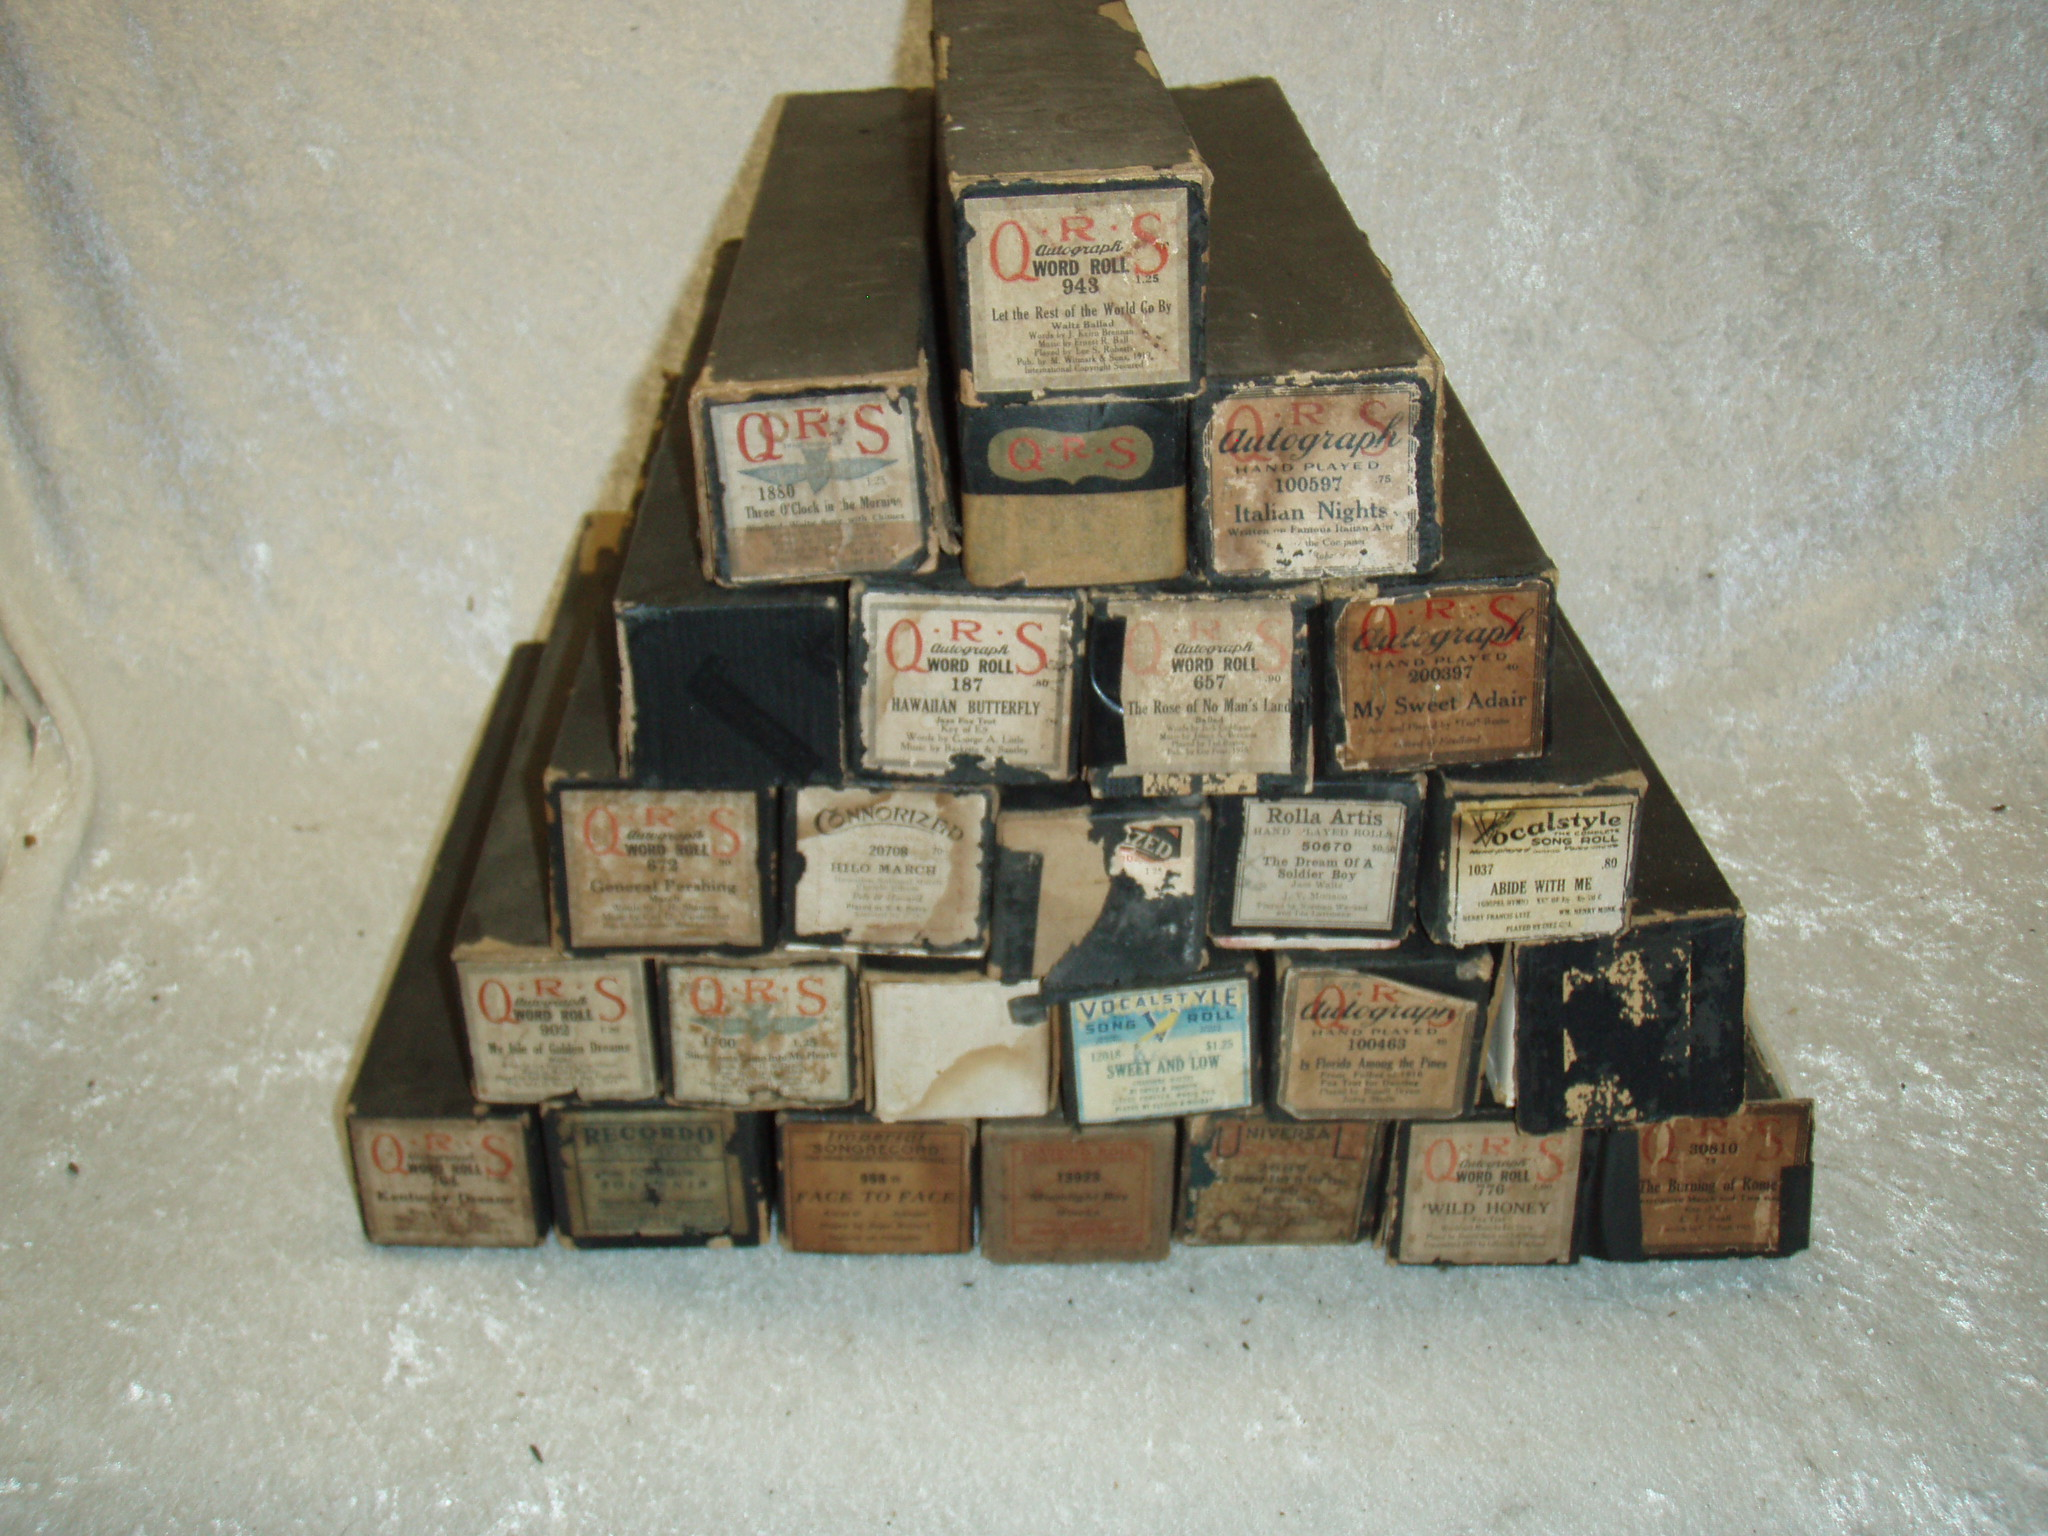 Set of 26 Vintage Player Piano Rolls